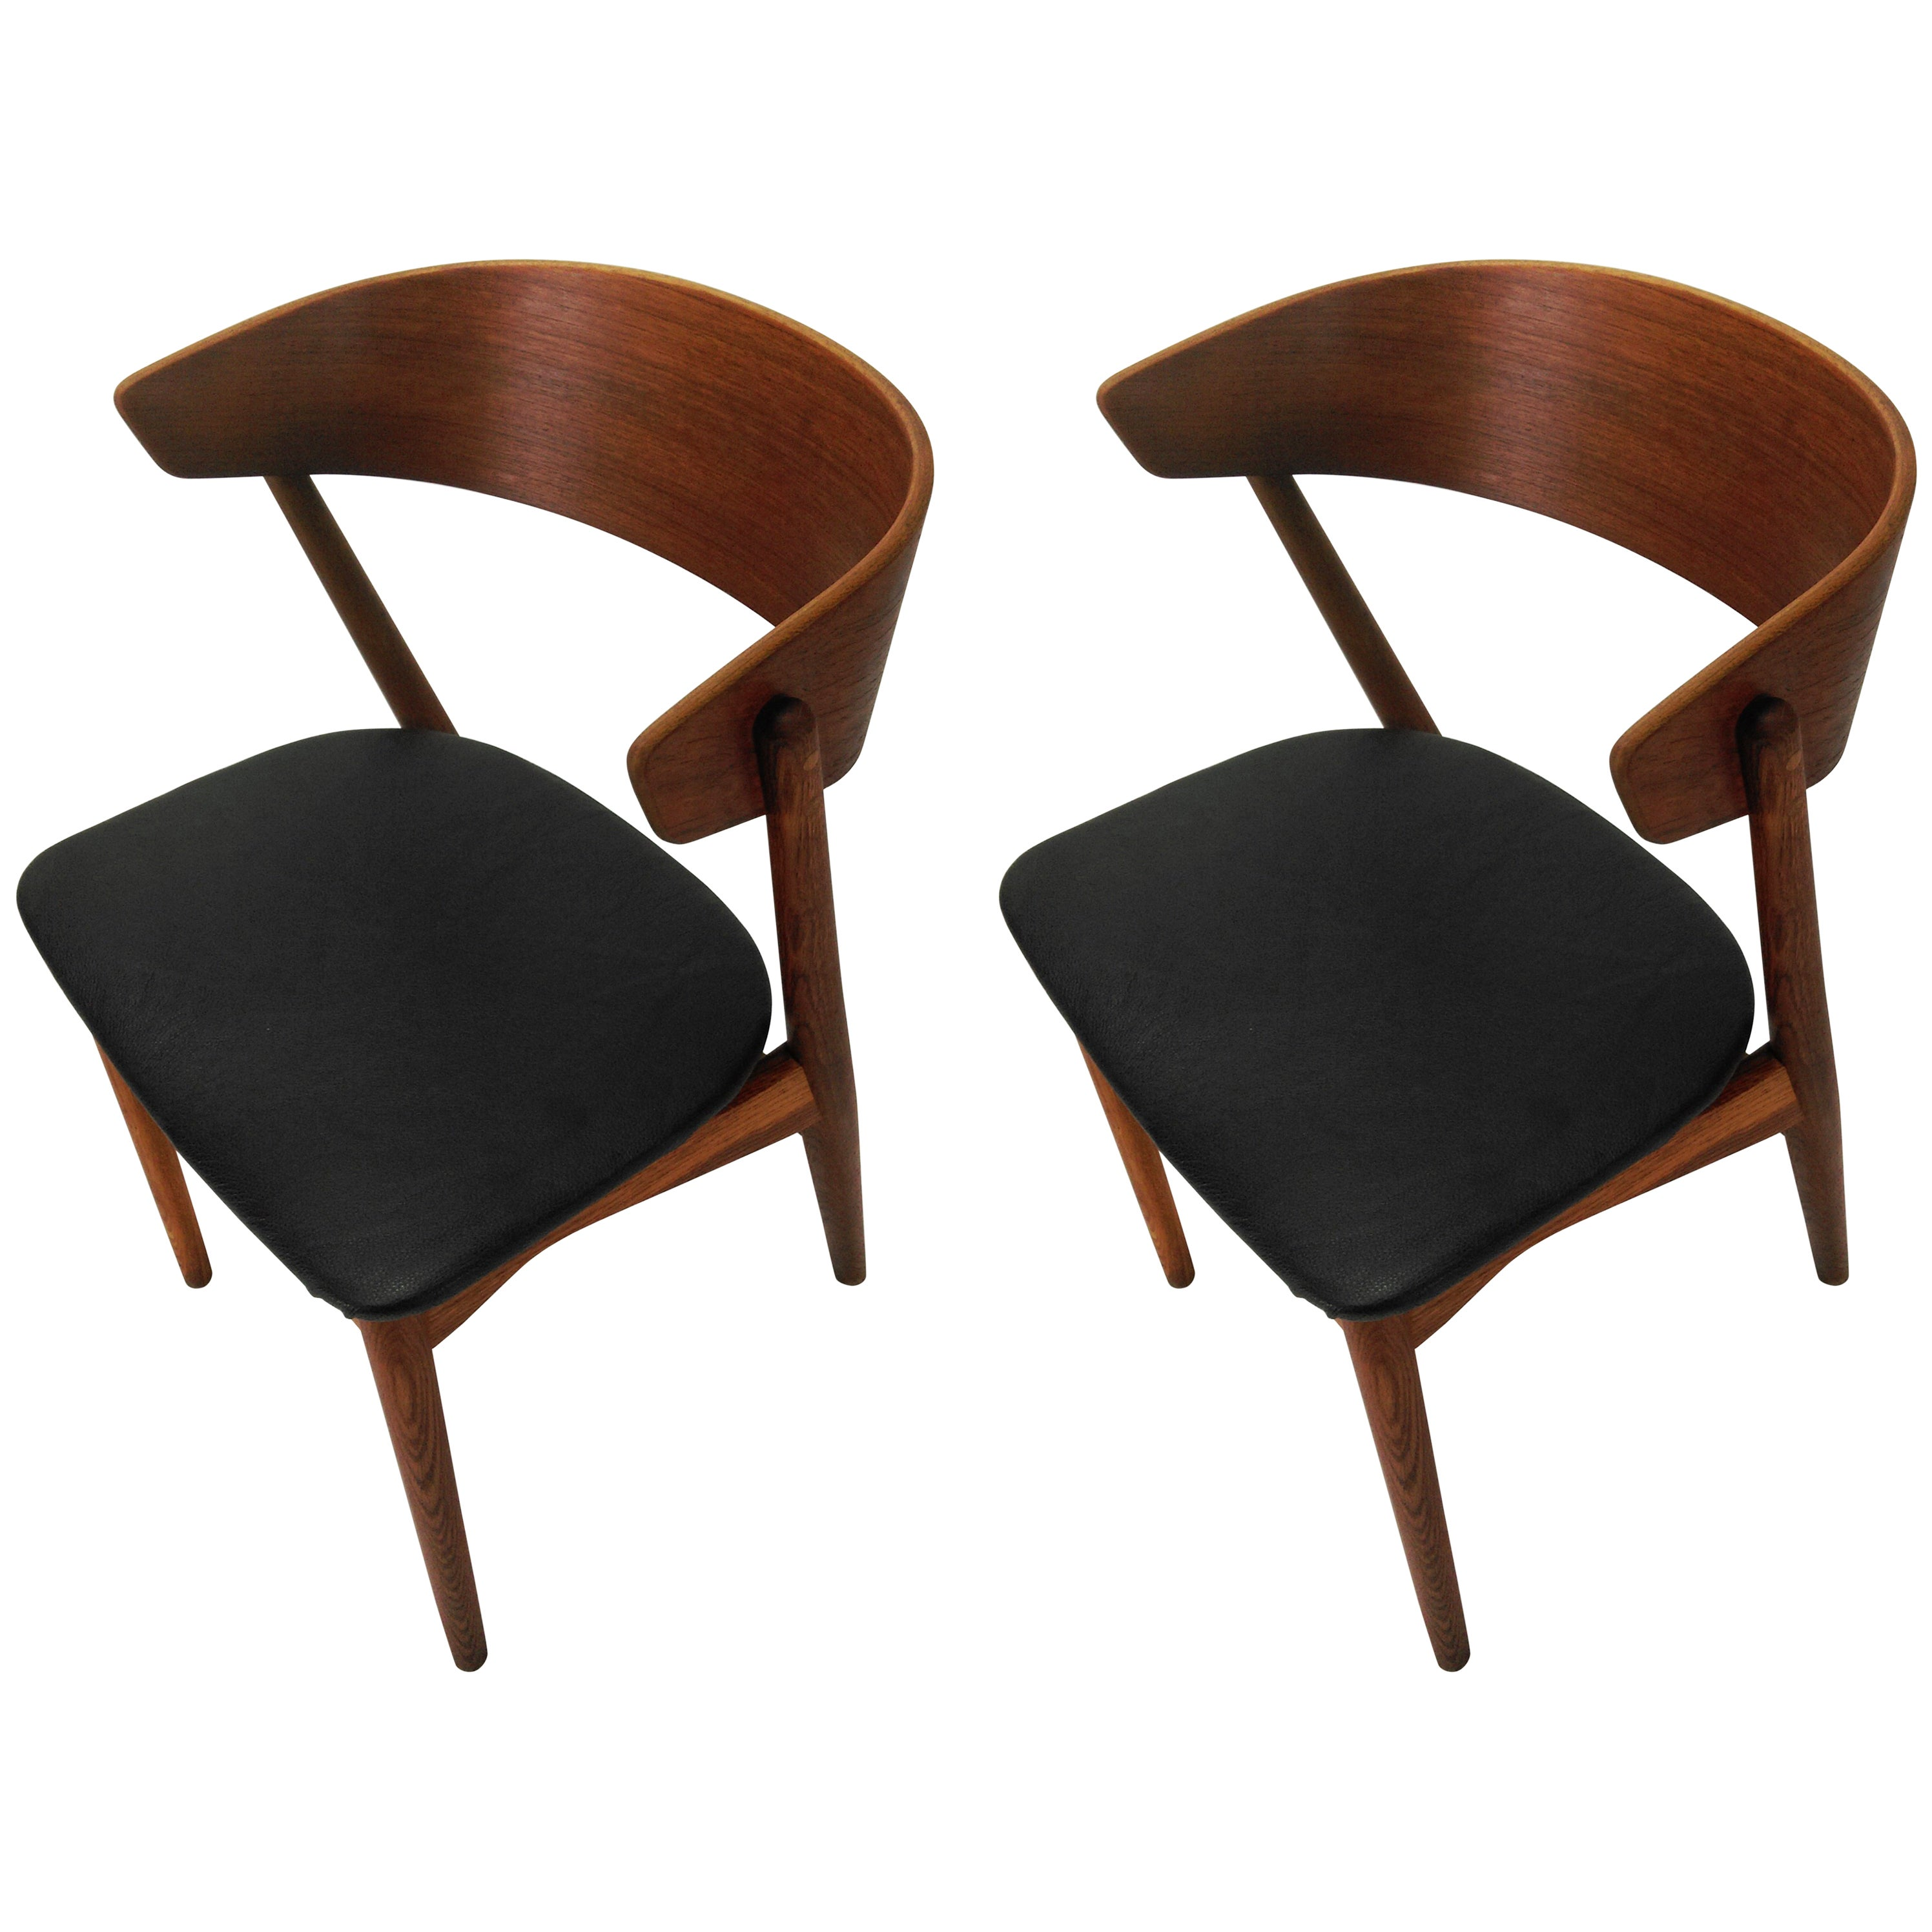 1960s Pair of Danish Dining Chairs in Teak and Oak by Helge Sibast